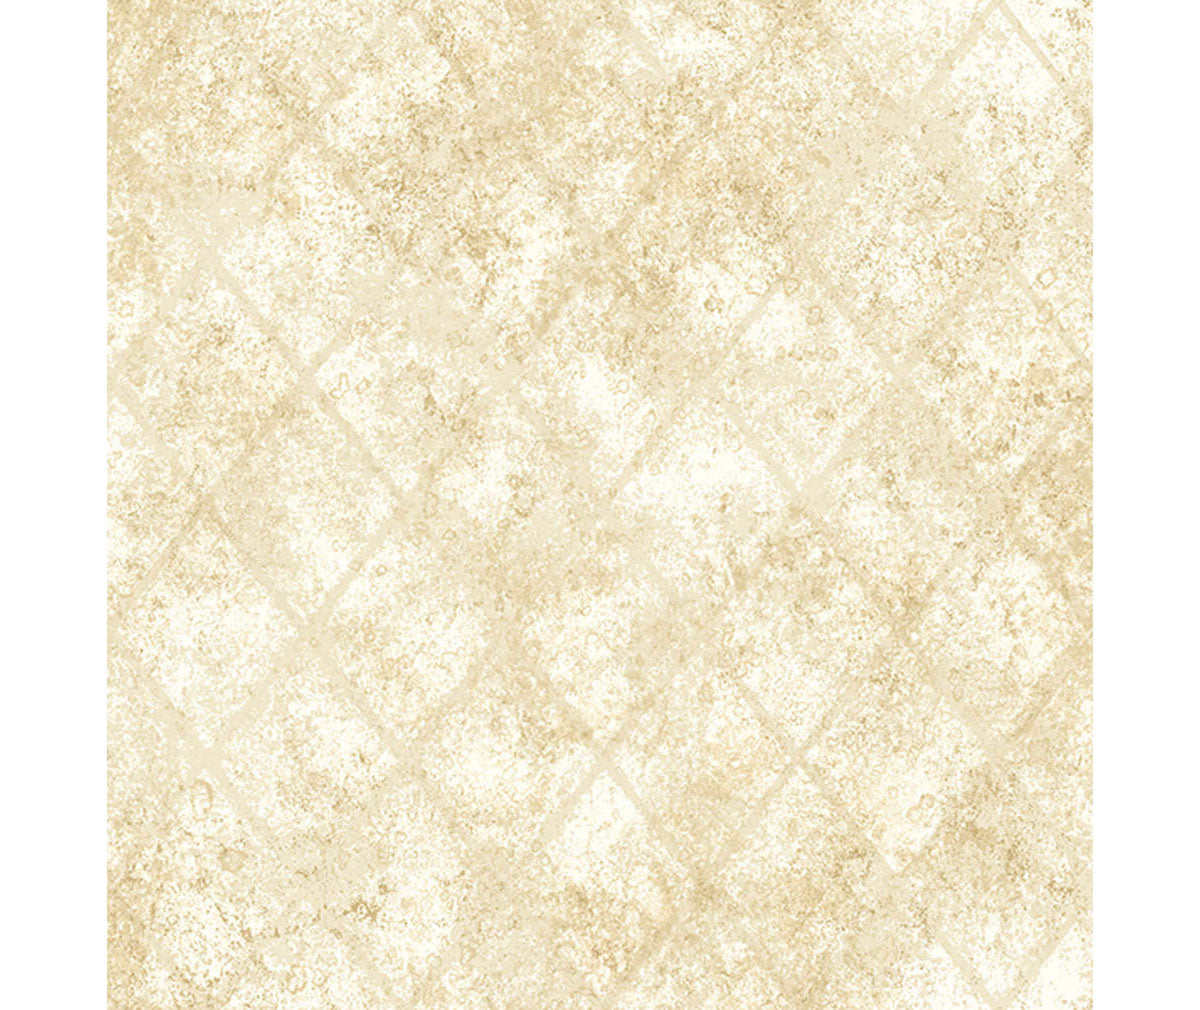 Mercury Glass Gold Distressed Metallic Wallpaper available at Barrydowne Paint